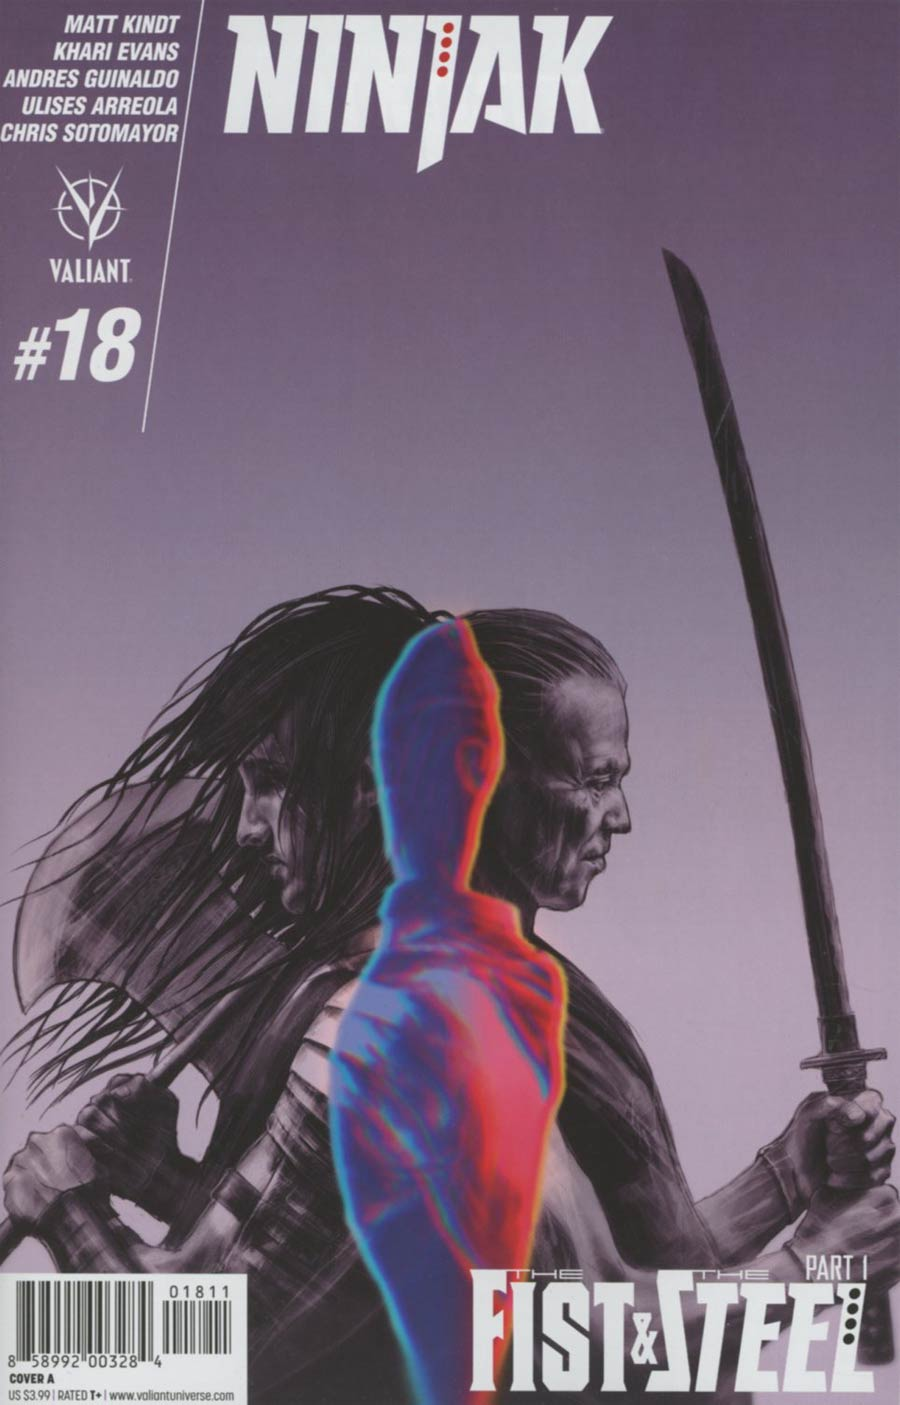 Ninjak Vol 3 #18 Cover A Regular Diego Latorre Cover